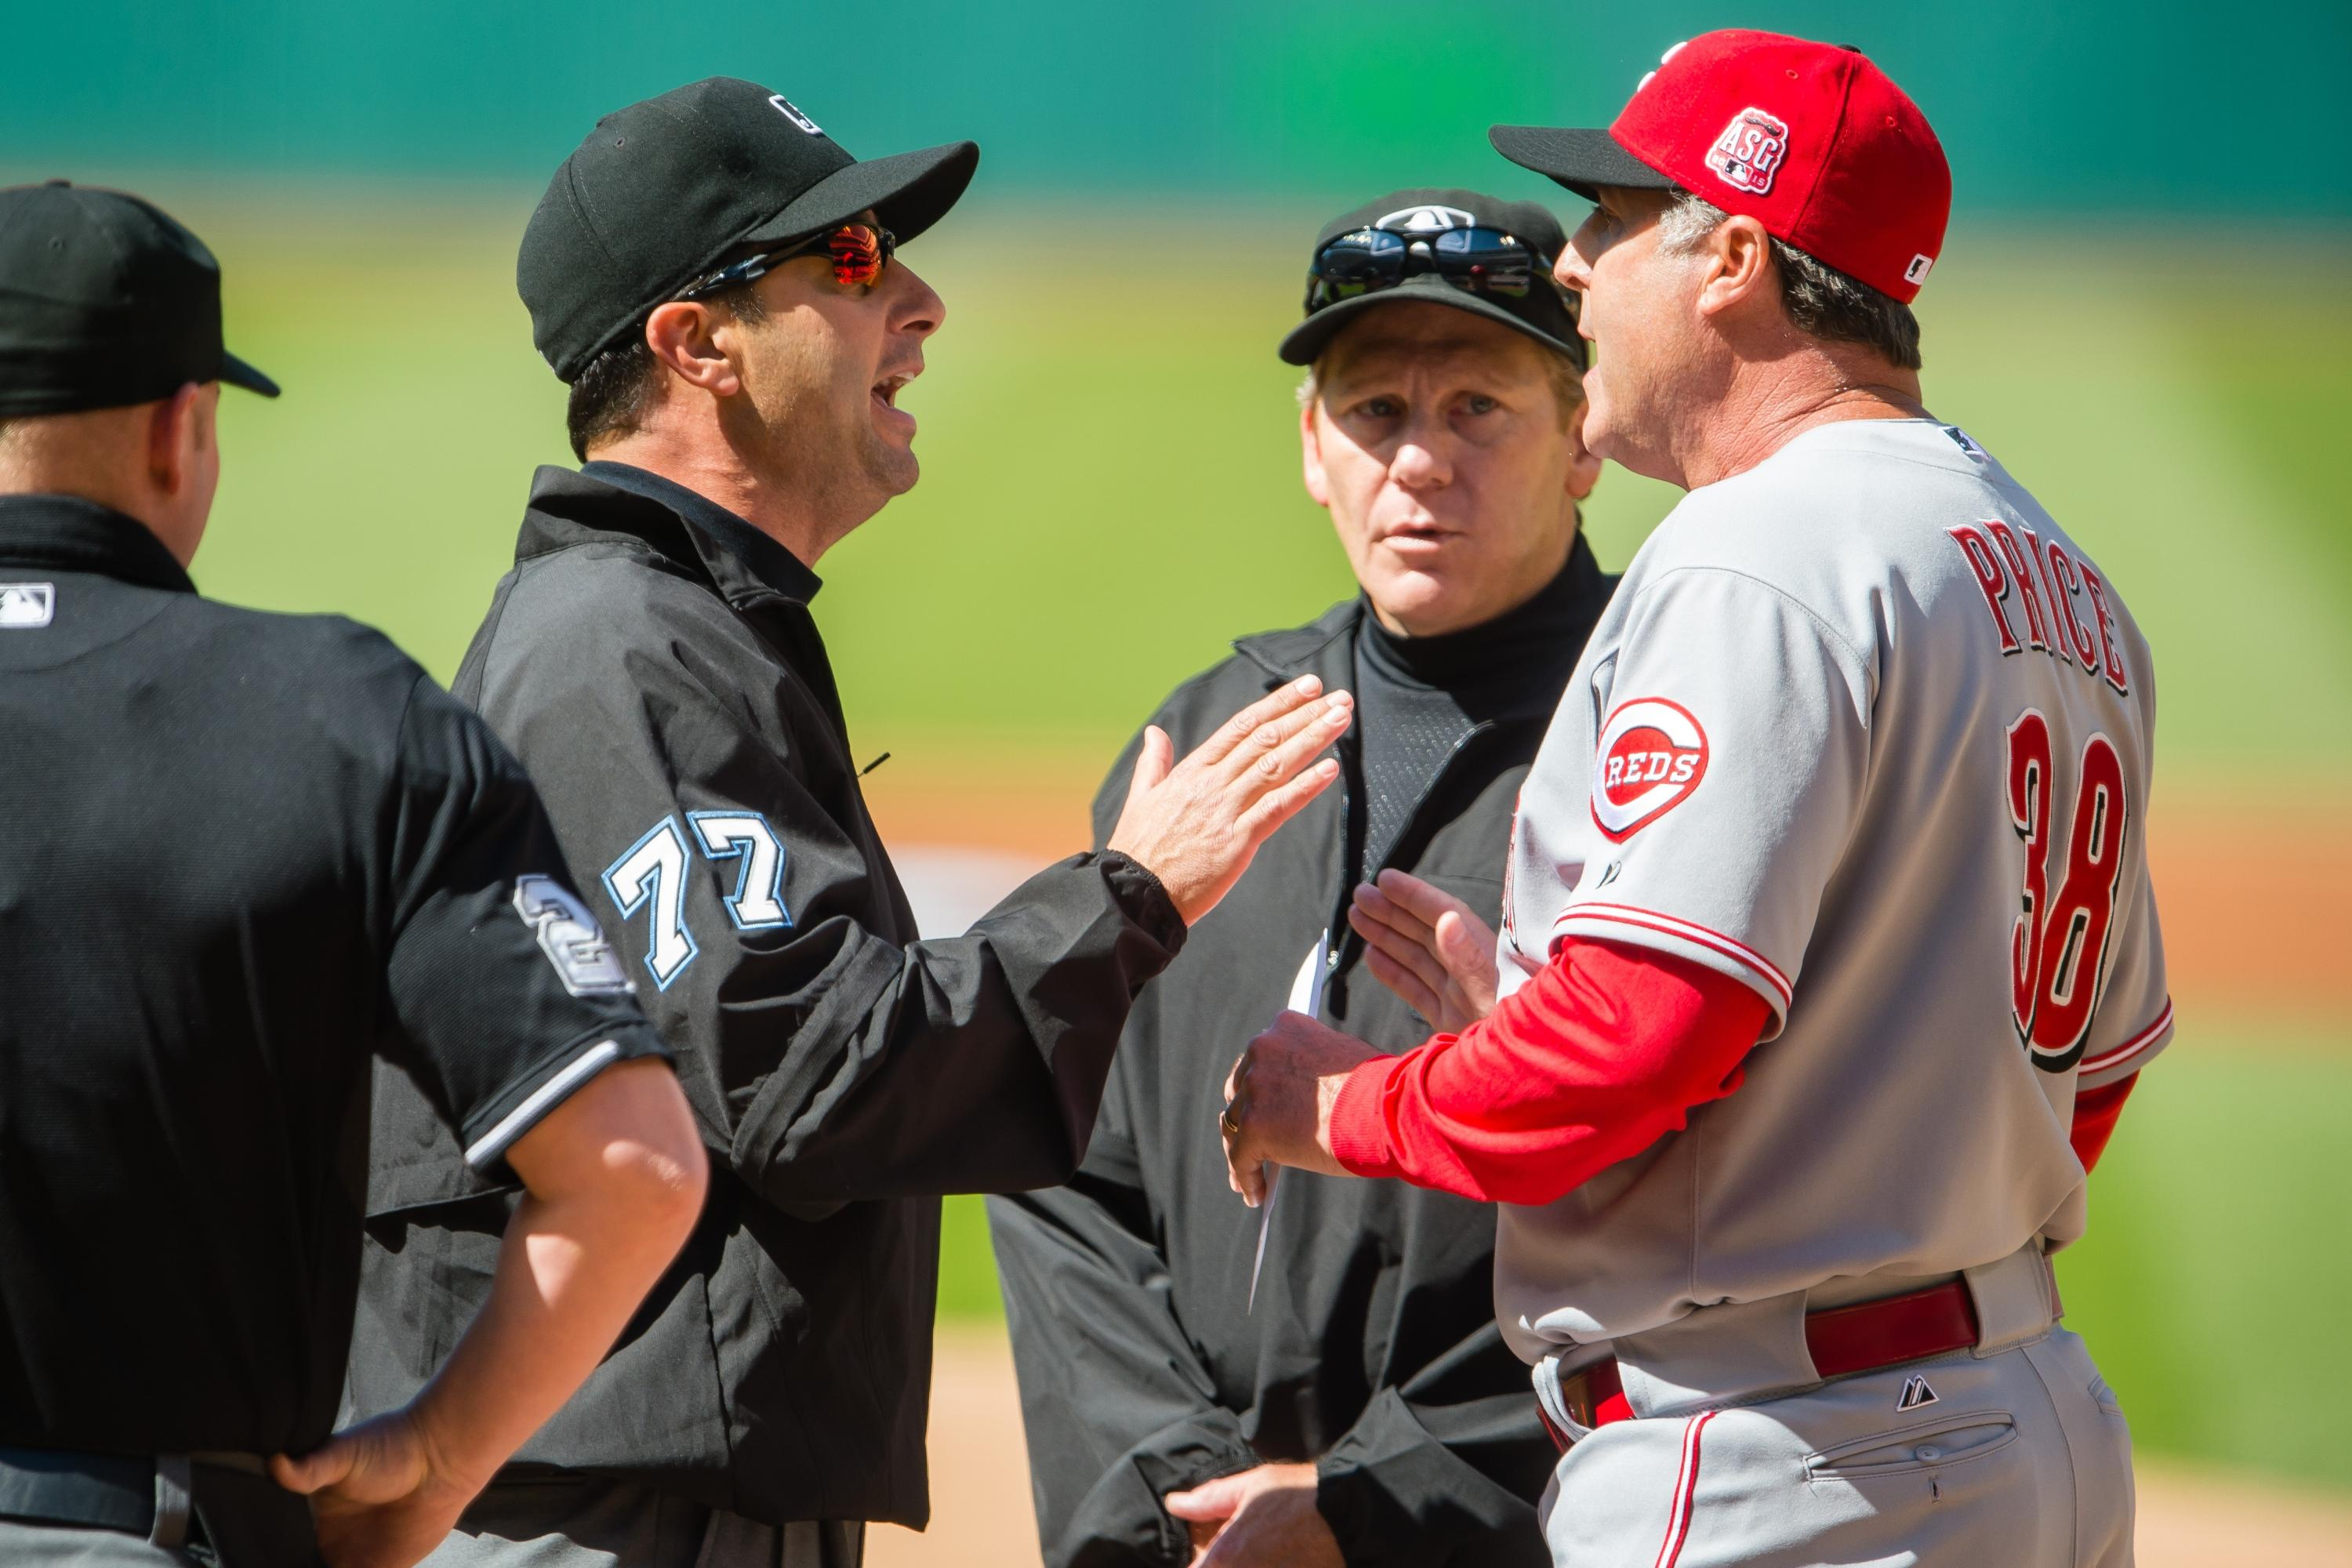 Reds manager Bryan Price ejected before game against Indians